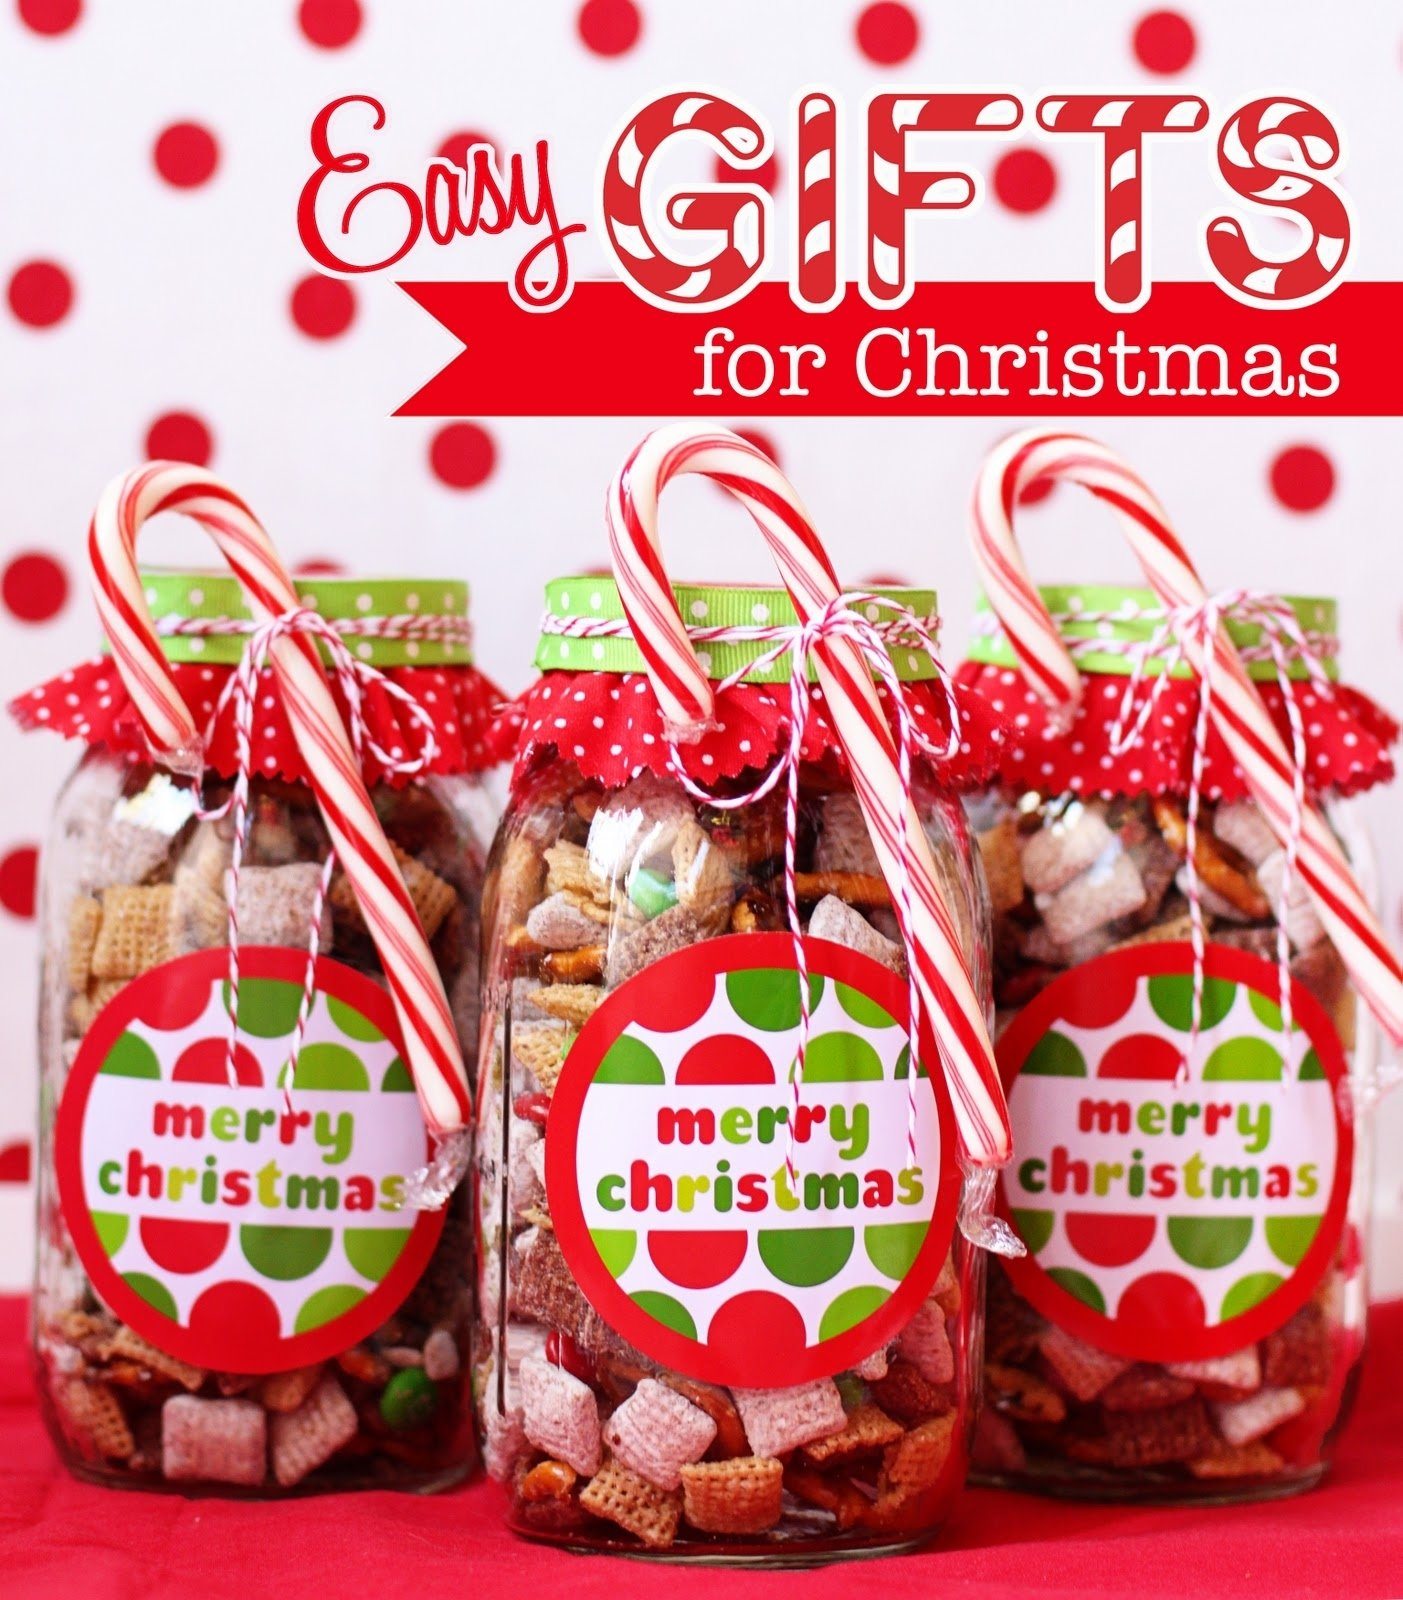 10 Fantastic Ideas For Christmas Gifts To Make homemade ideas for christmas decorating gift aegisfilms idolza 2021